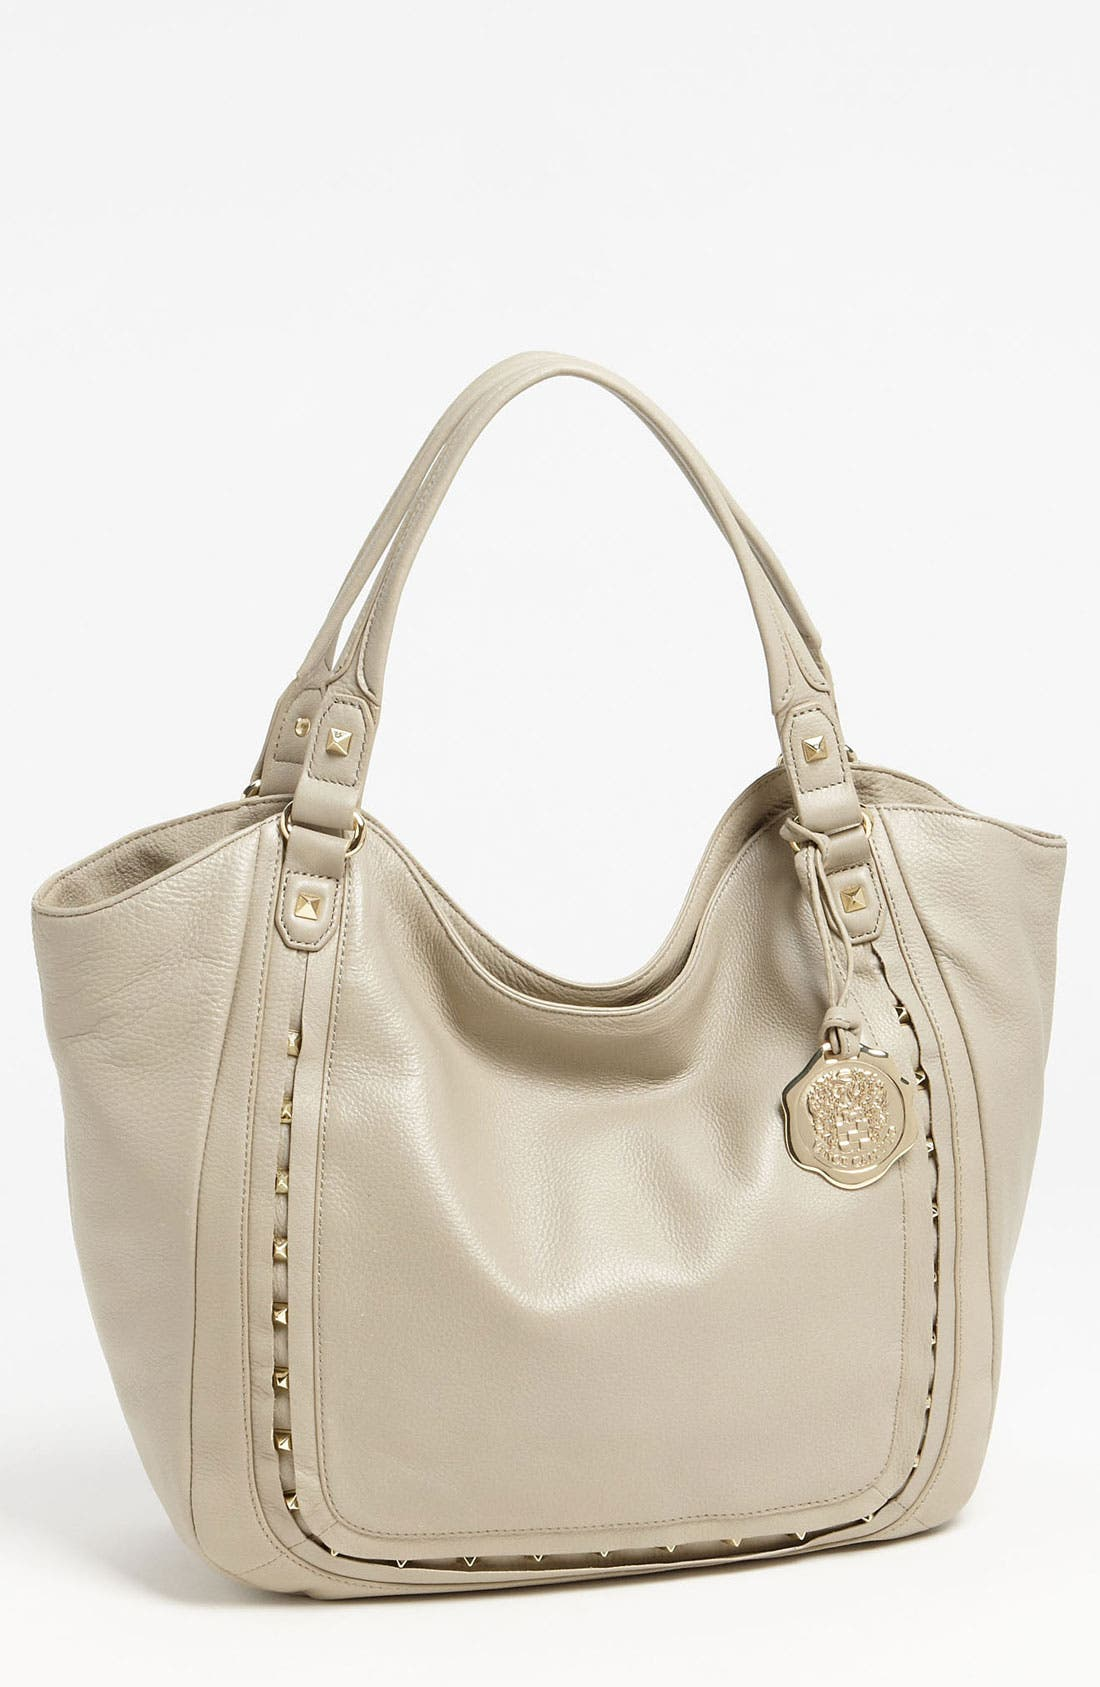 Alternate Image 1 Selected - Vince Camuto 'Ila' Tote